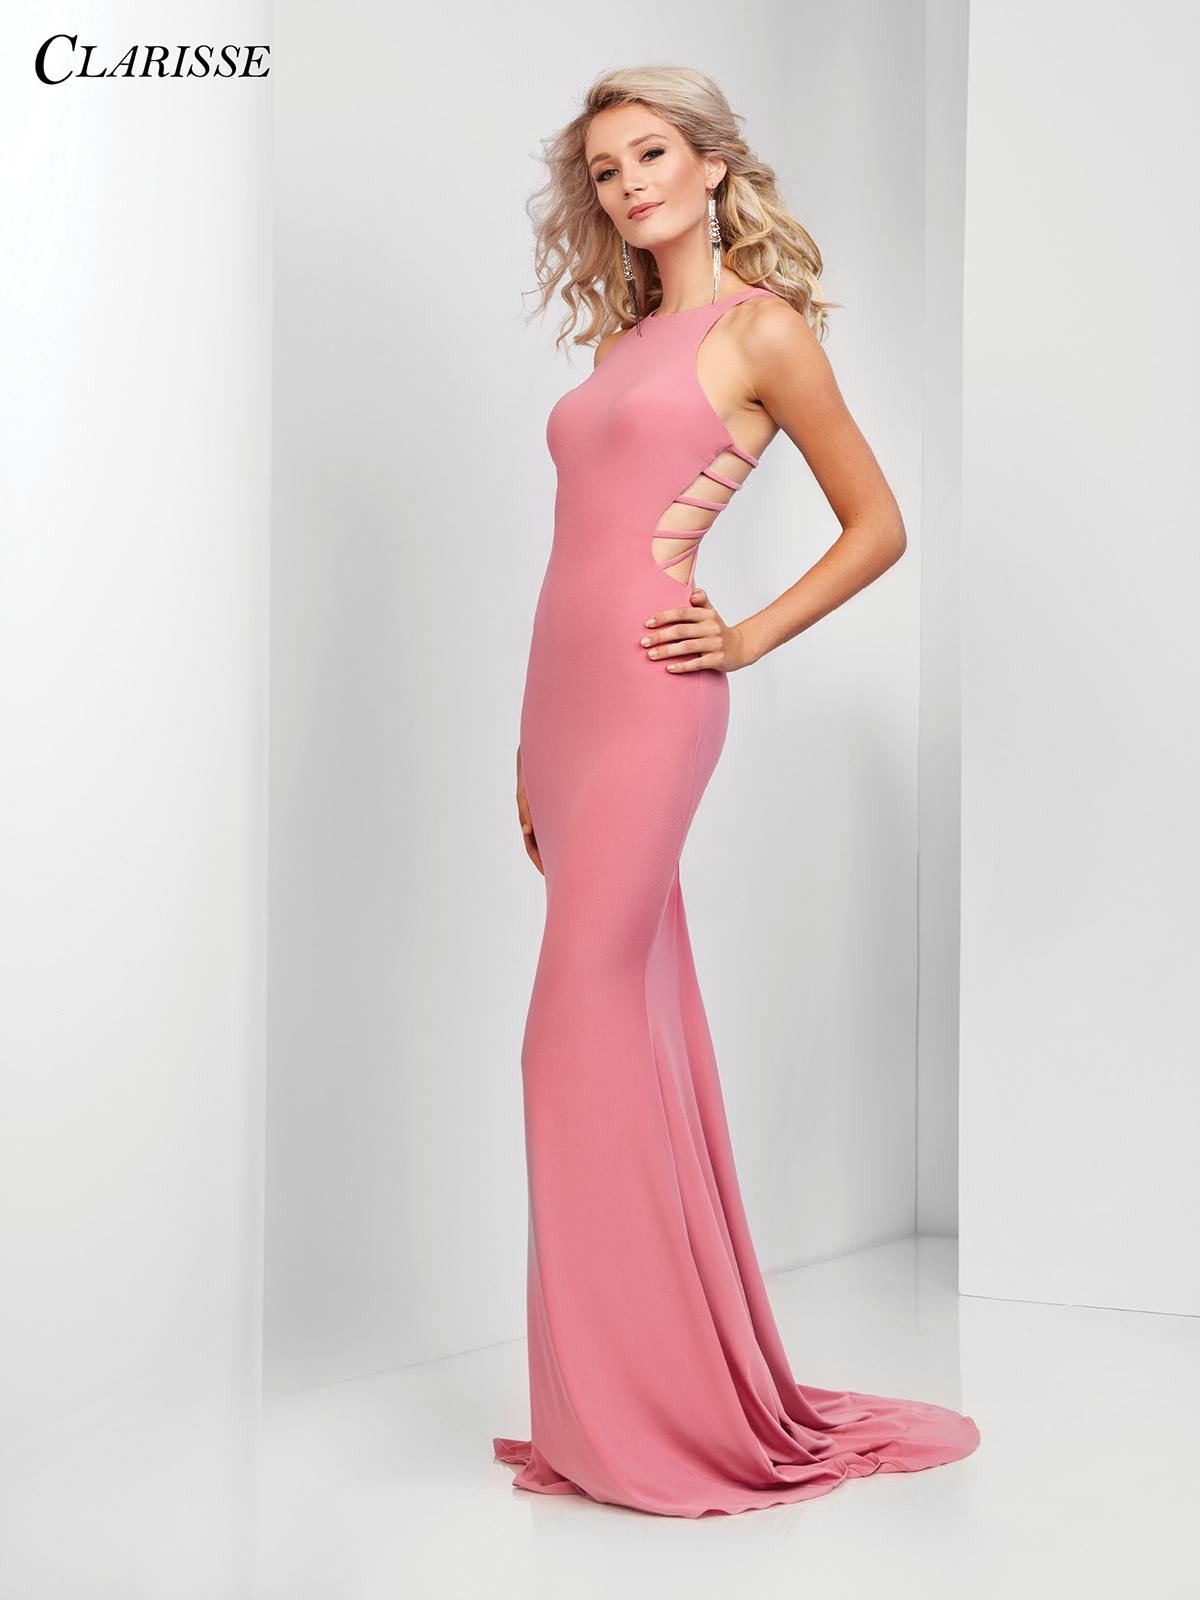 2018 Prom Dress Clarisse 3459 | Promgirl.net